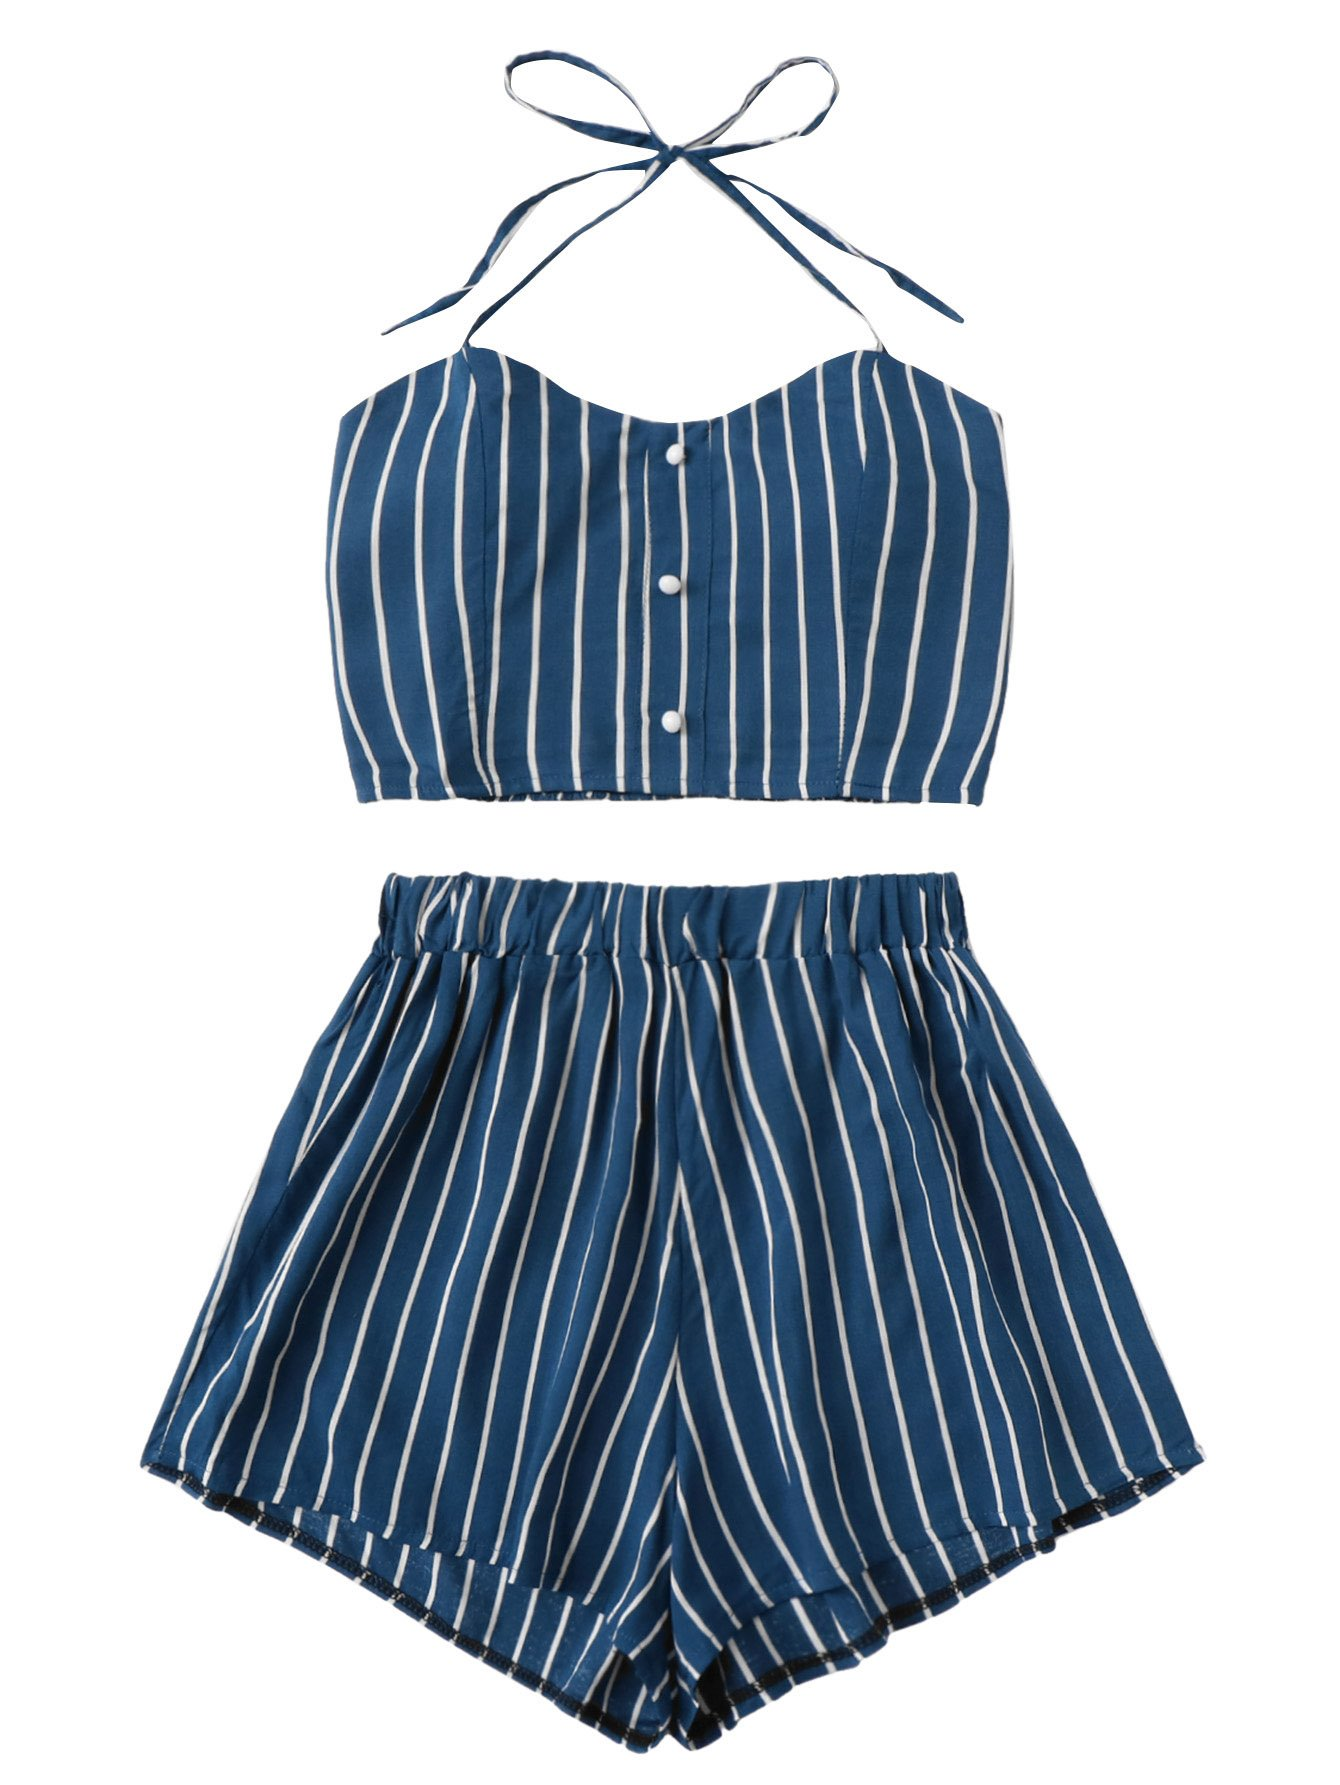 MakeMeChic Women's 2 Piece Outfit Summer Striped V Neck Crop Cami Top with Shorts Blue-3 S